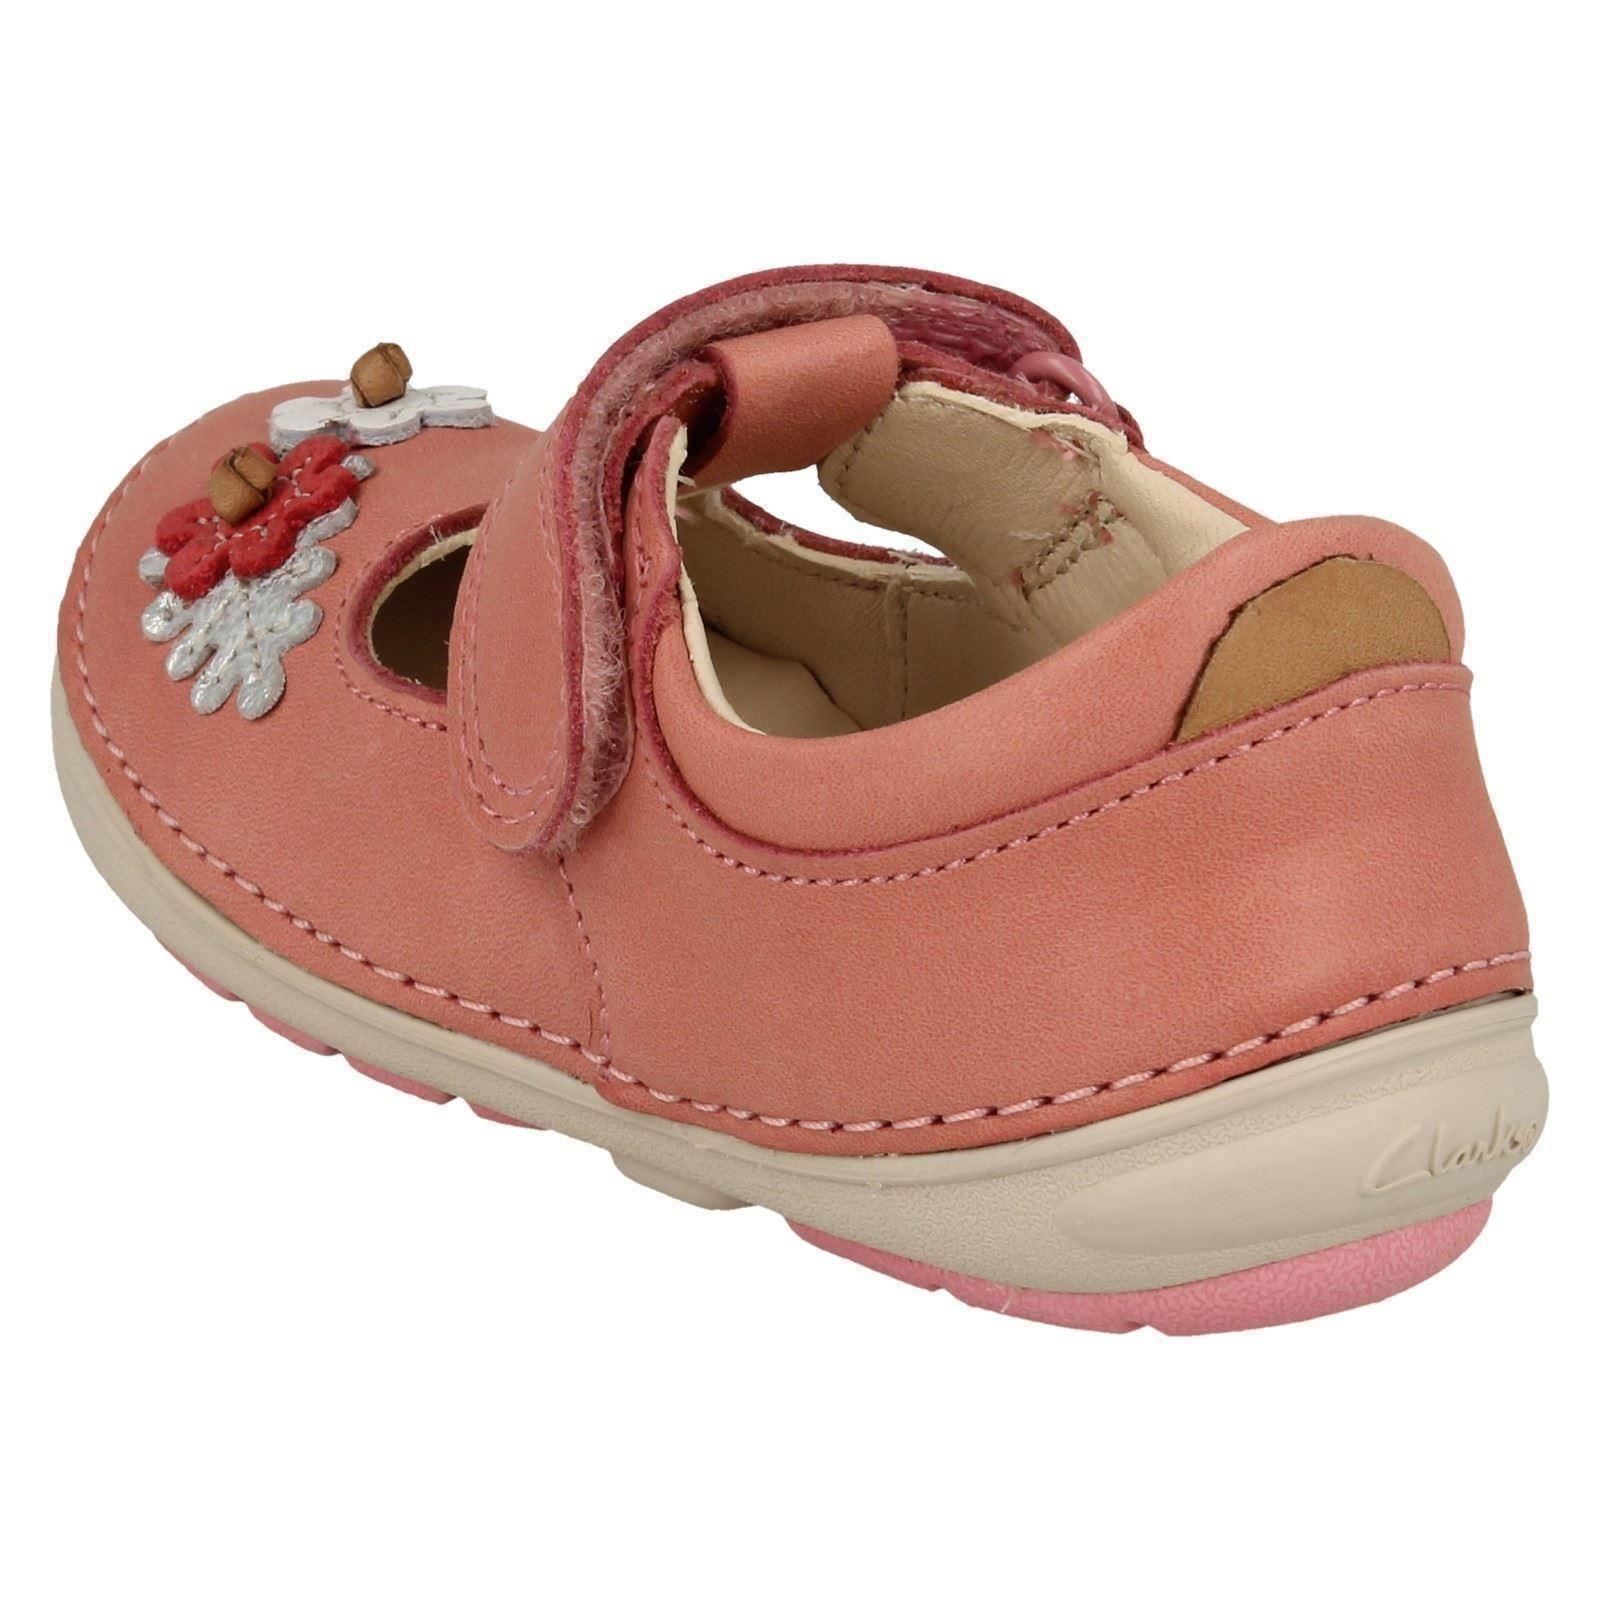 Hook Clarks Infant First Walking rosa cuero Girls de Baby zapatos flor Loop suavemente Pink xITqTRw